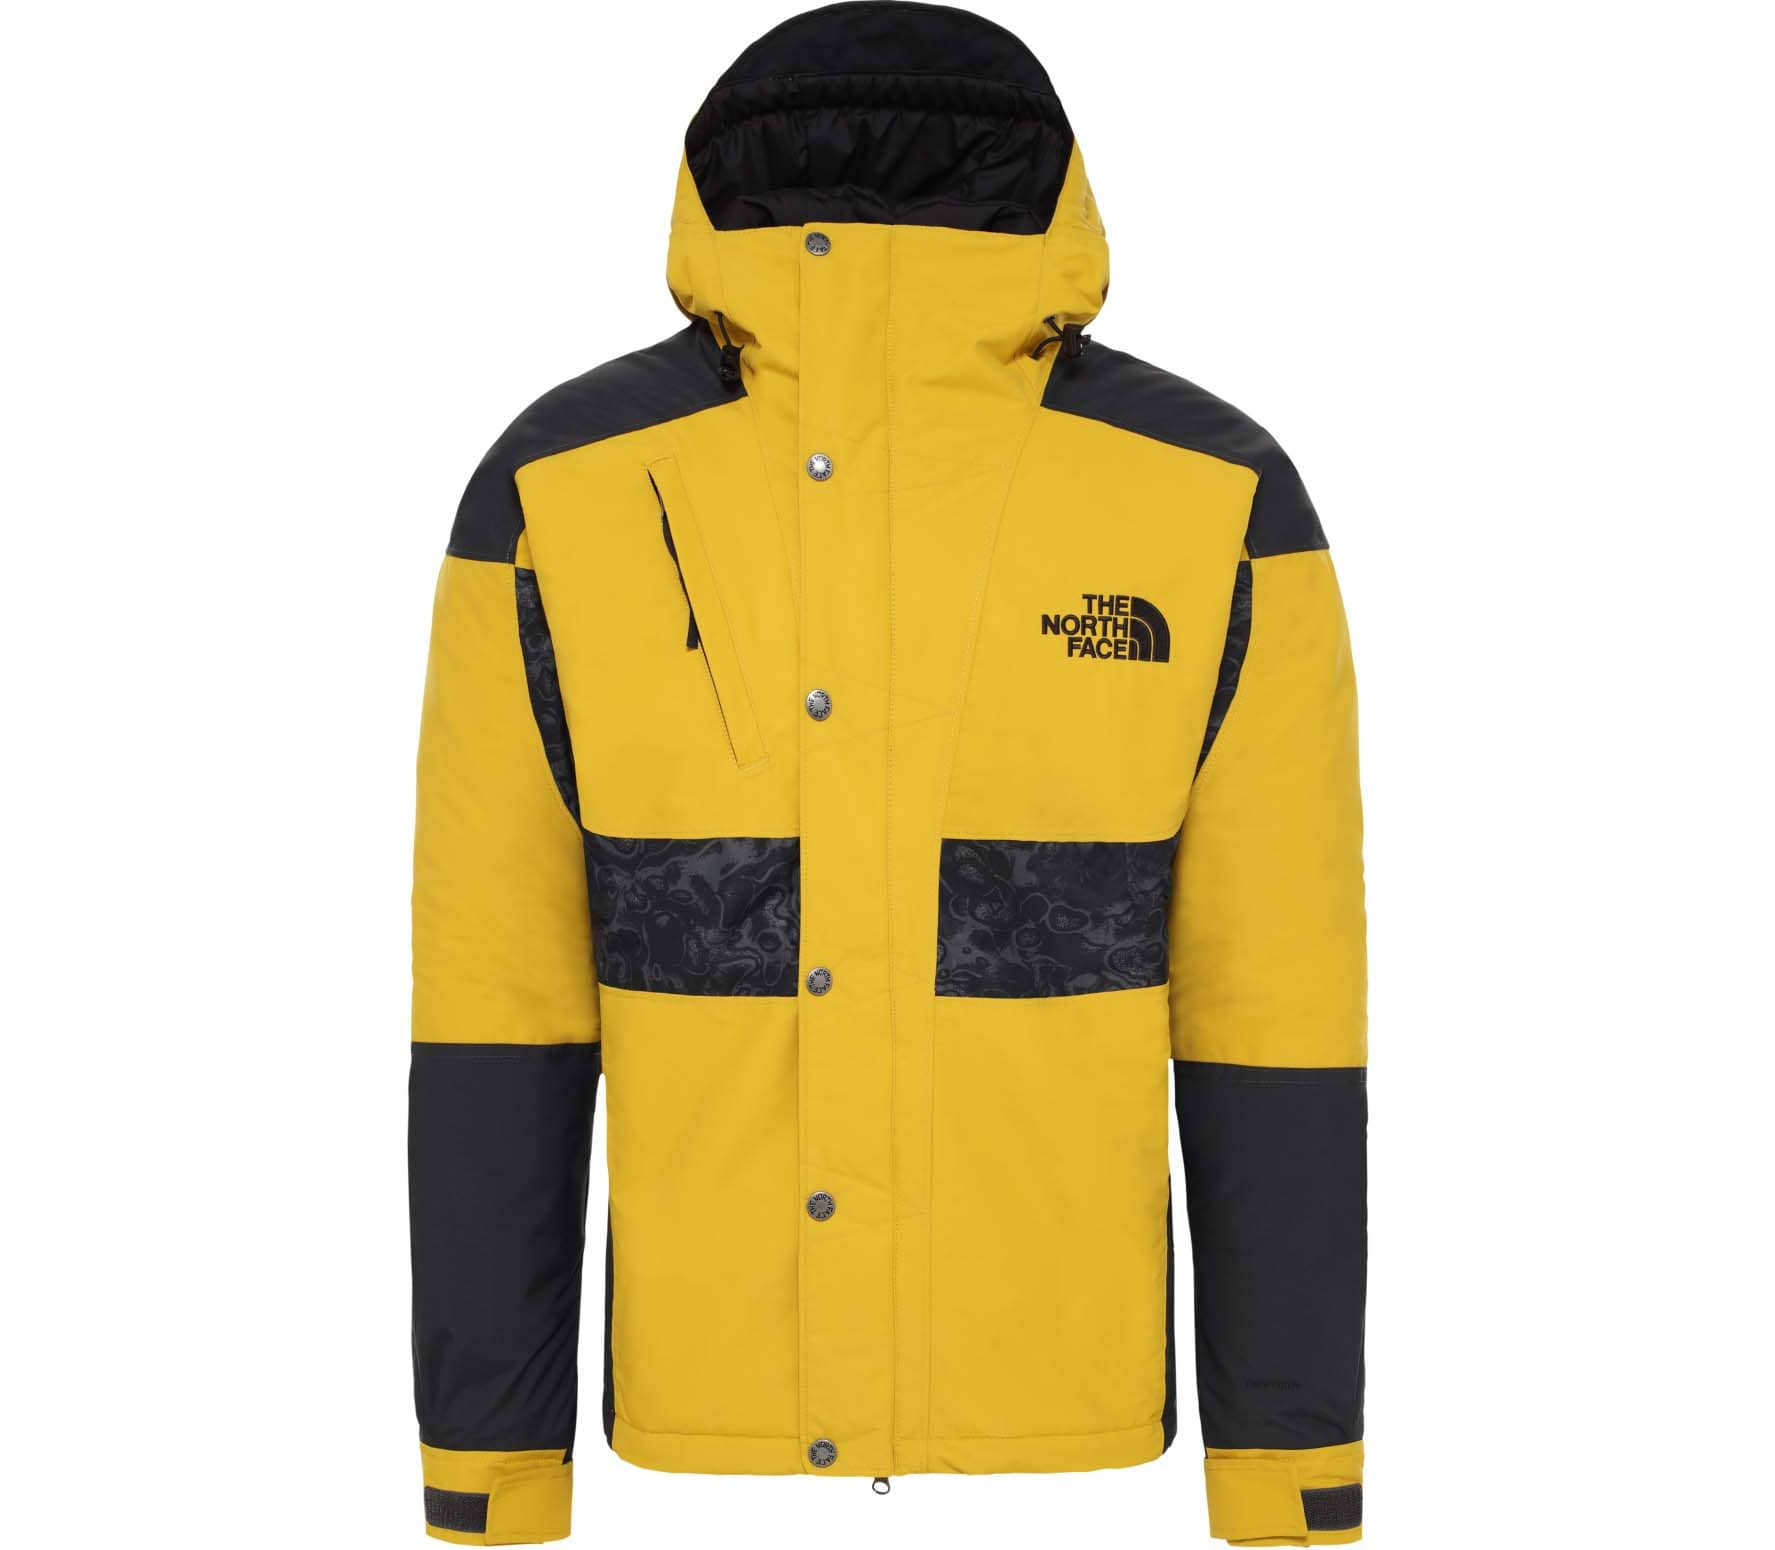 The North Face 94 Rage Wp Synthetic Insulated Herren Jacke gelb